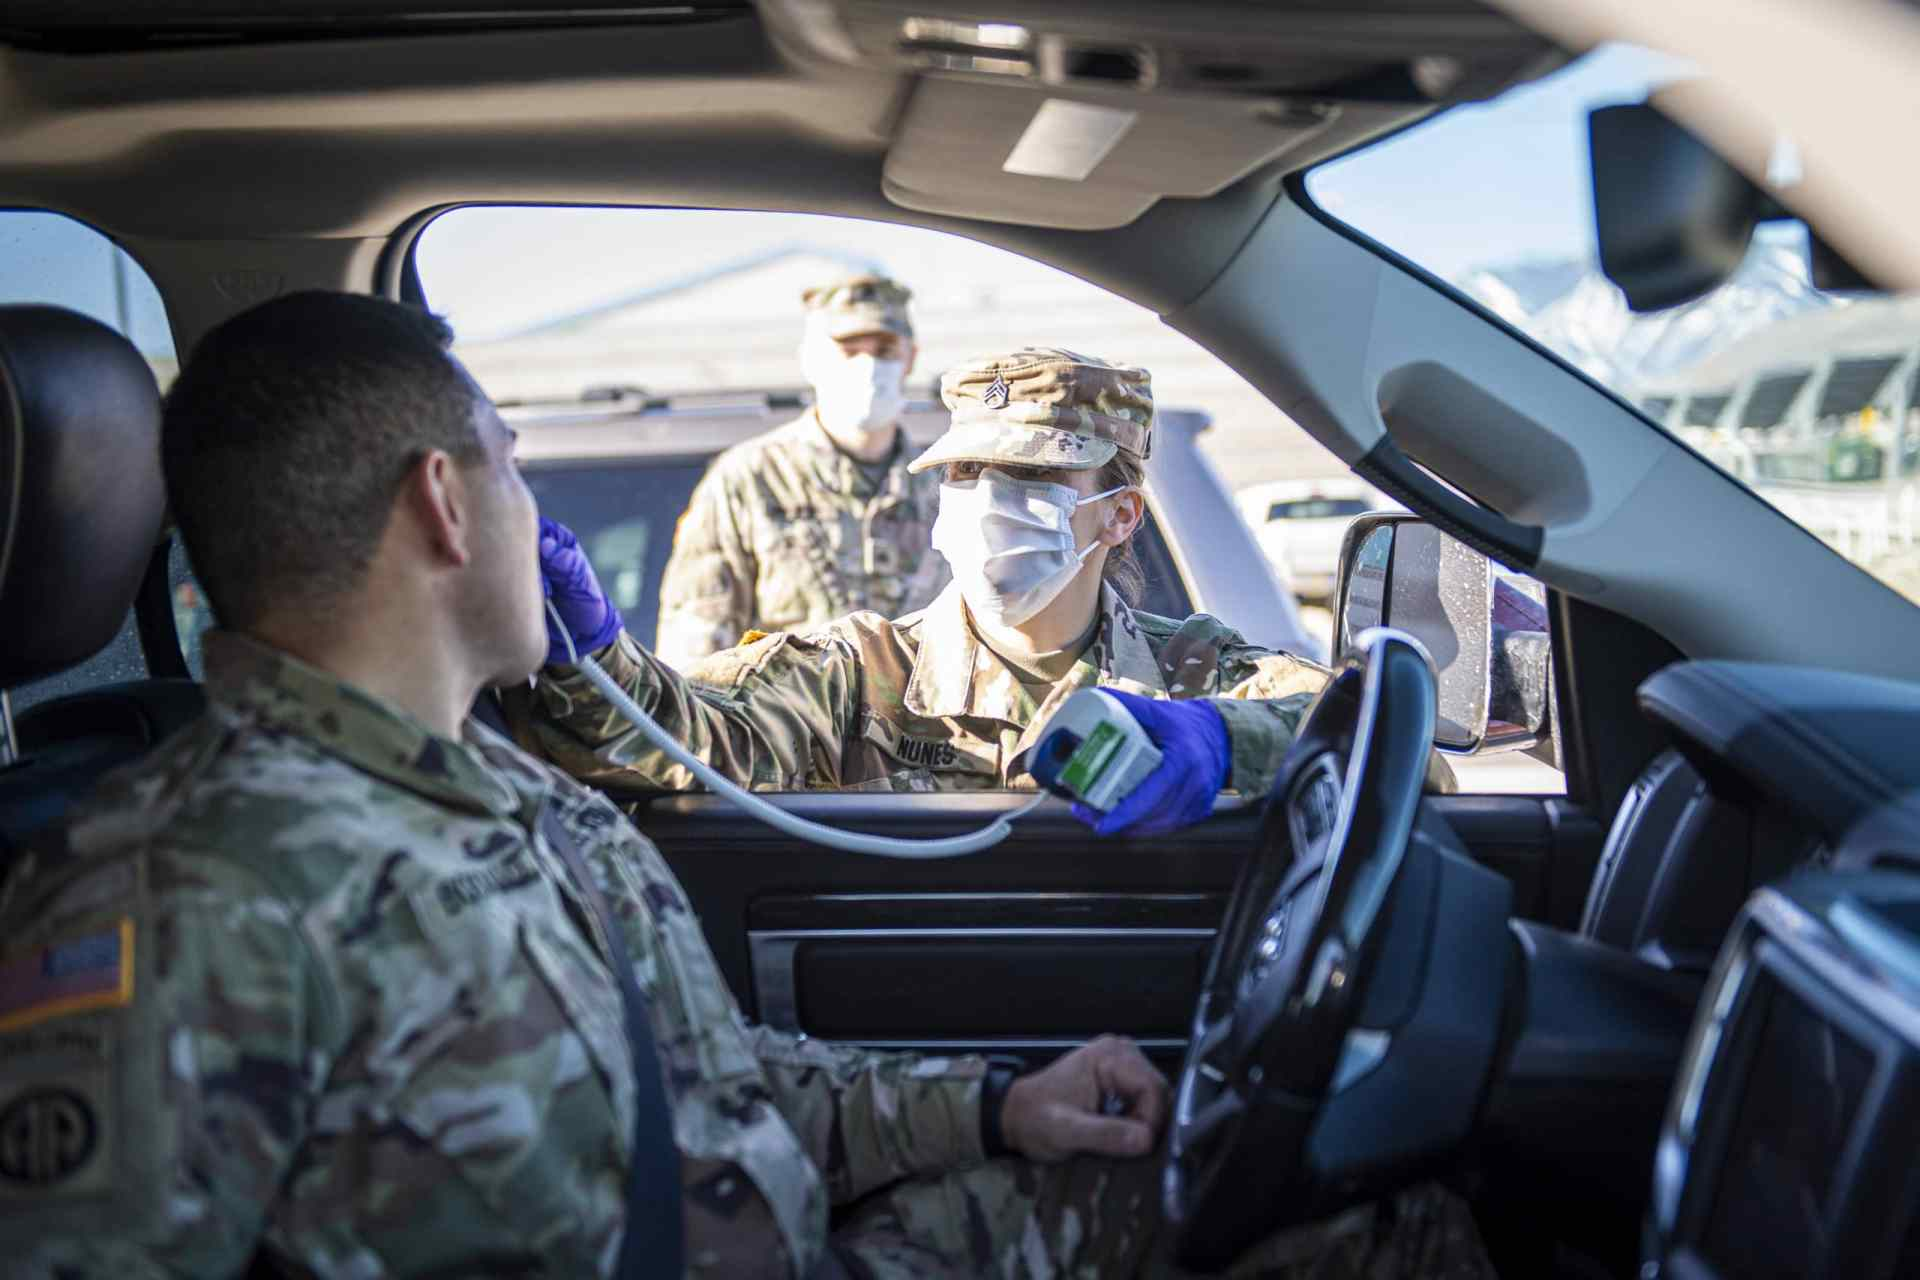 Staff Sgt. Jennifer Nunes, a health care specialist assigned to the Northern Nevada Medical Detachment Nevada National Guard, checks the temperature of a Soldier at the front gate of the Office of the Adjutant General complex in Carson City, April 1, 2020. The Nevada National Guard started screening the Soldiers, Airmen, and civilians that continue to work despite the COVID-19 outbreak. (National Guard photo by Sgt. Walter H. Lowell)